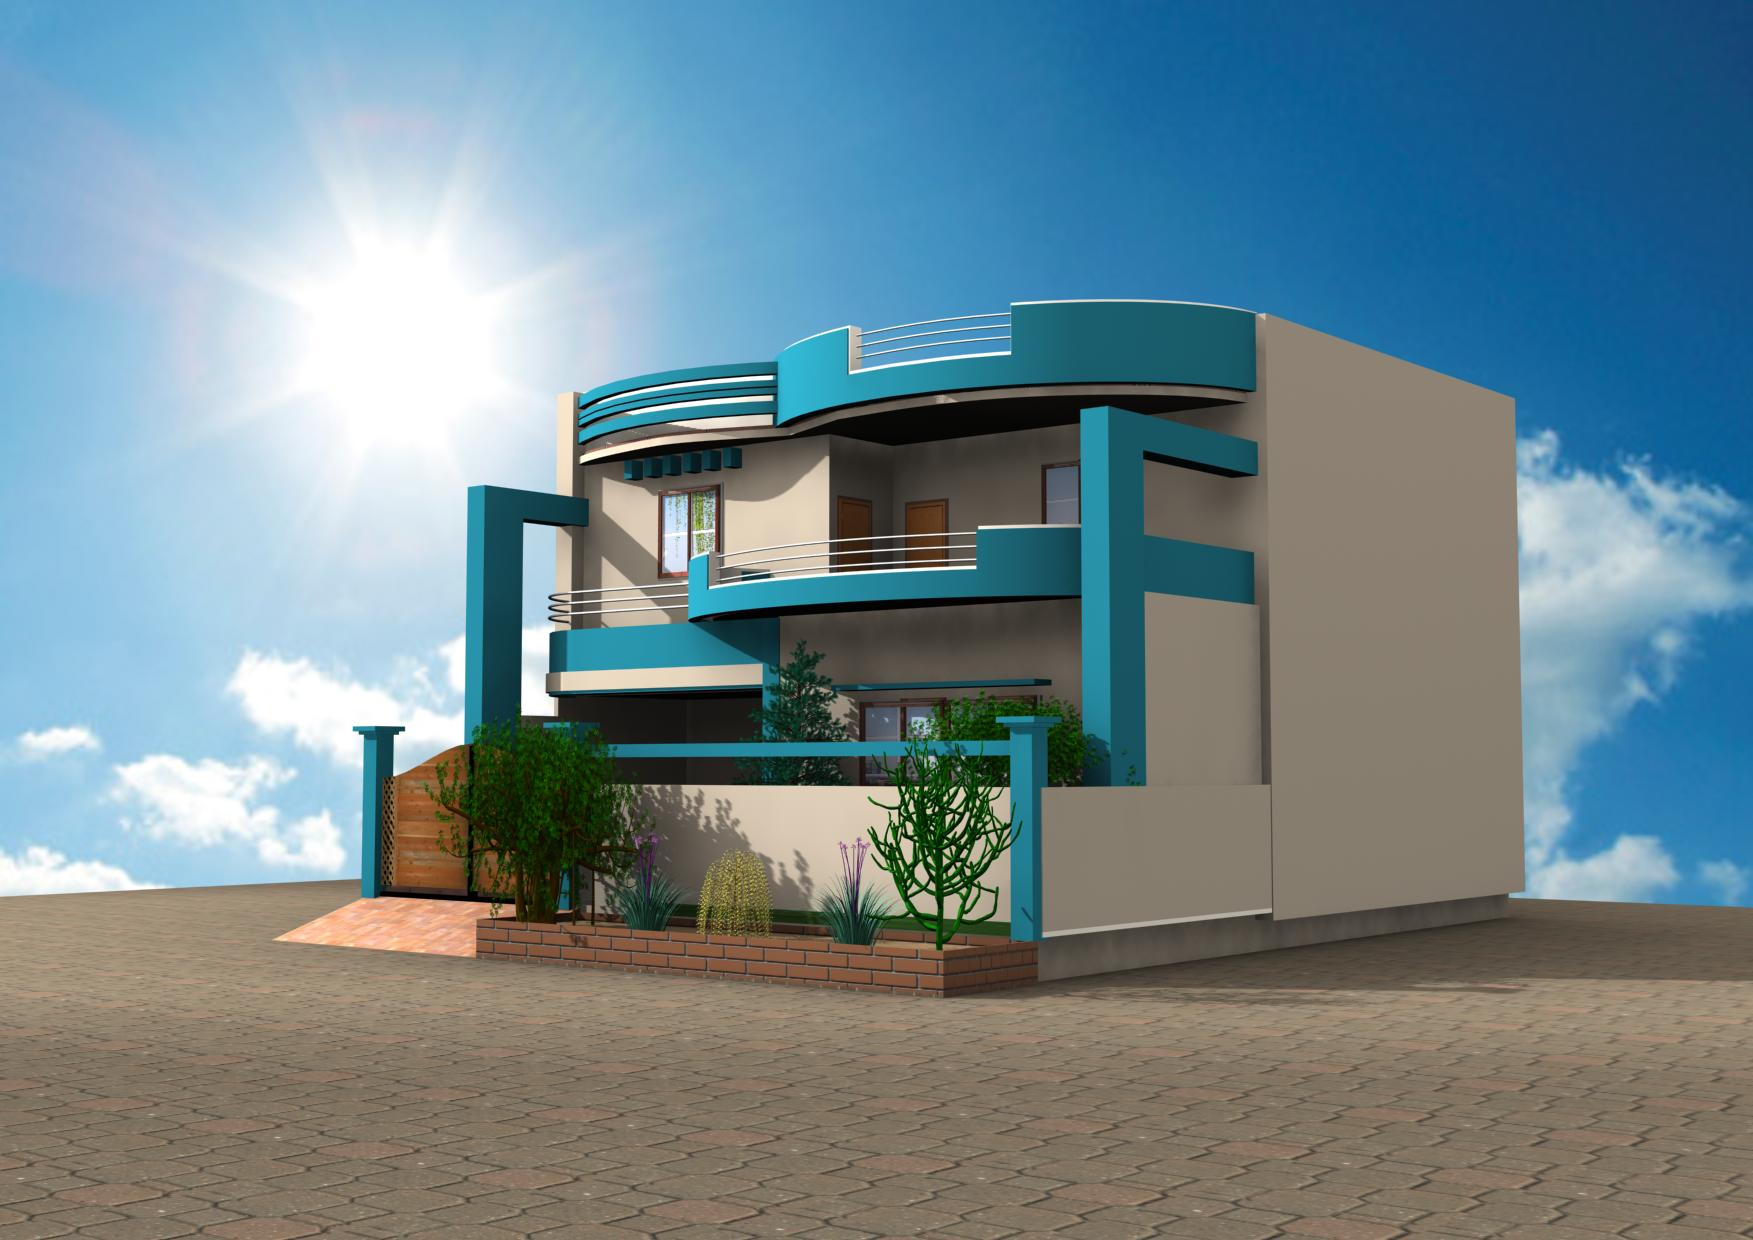 3d home design by muzammil ahmed on deviantart 3d model house design